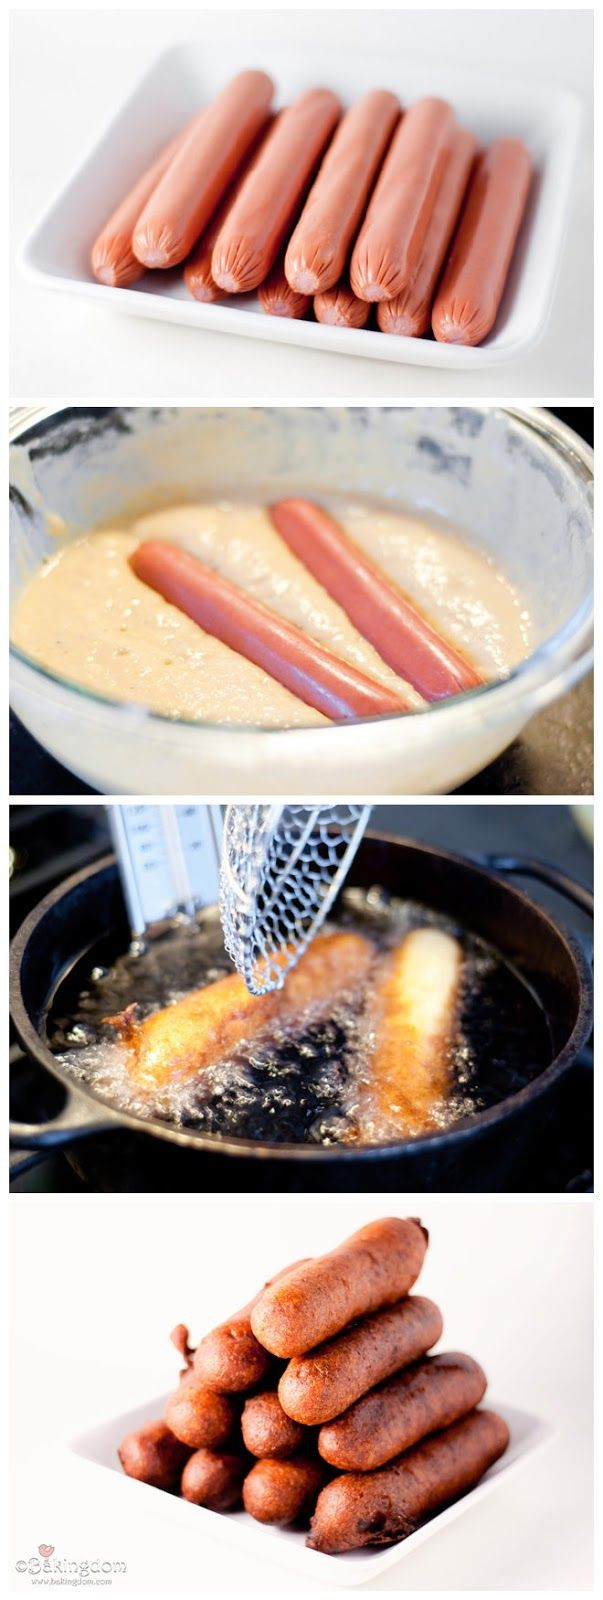 Homemade Corn Dogs - Askmefood